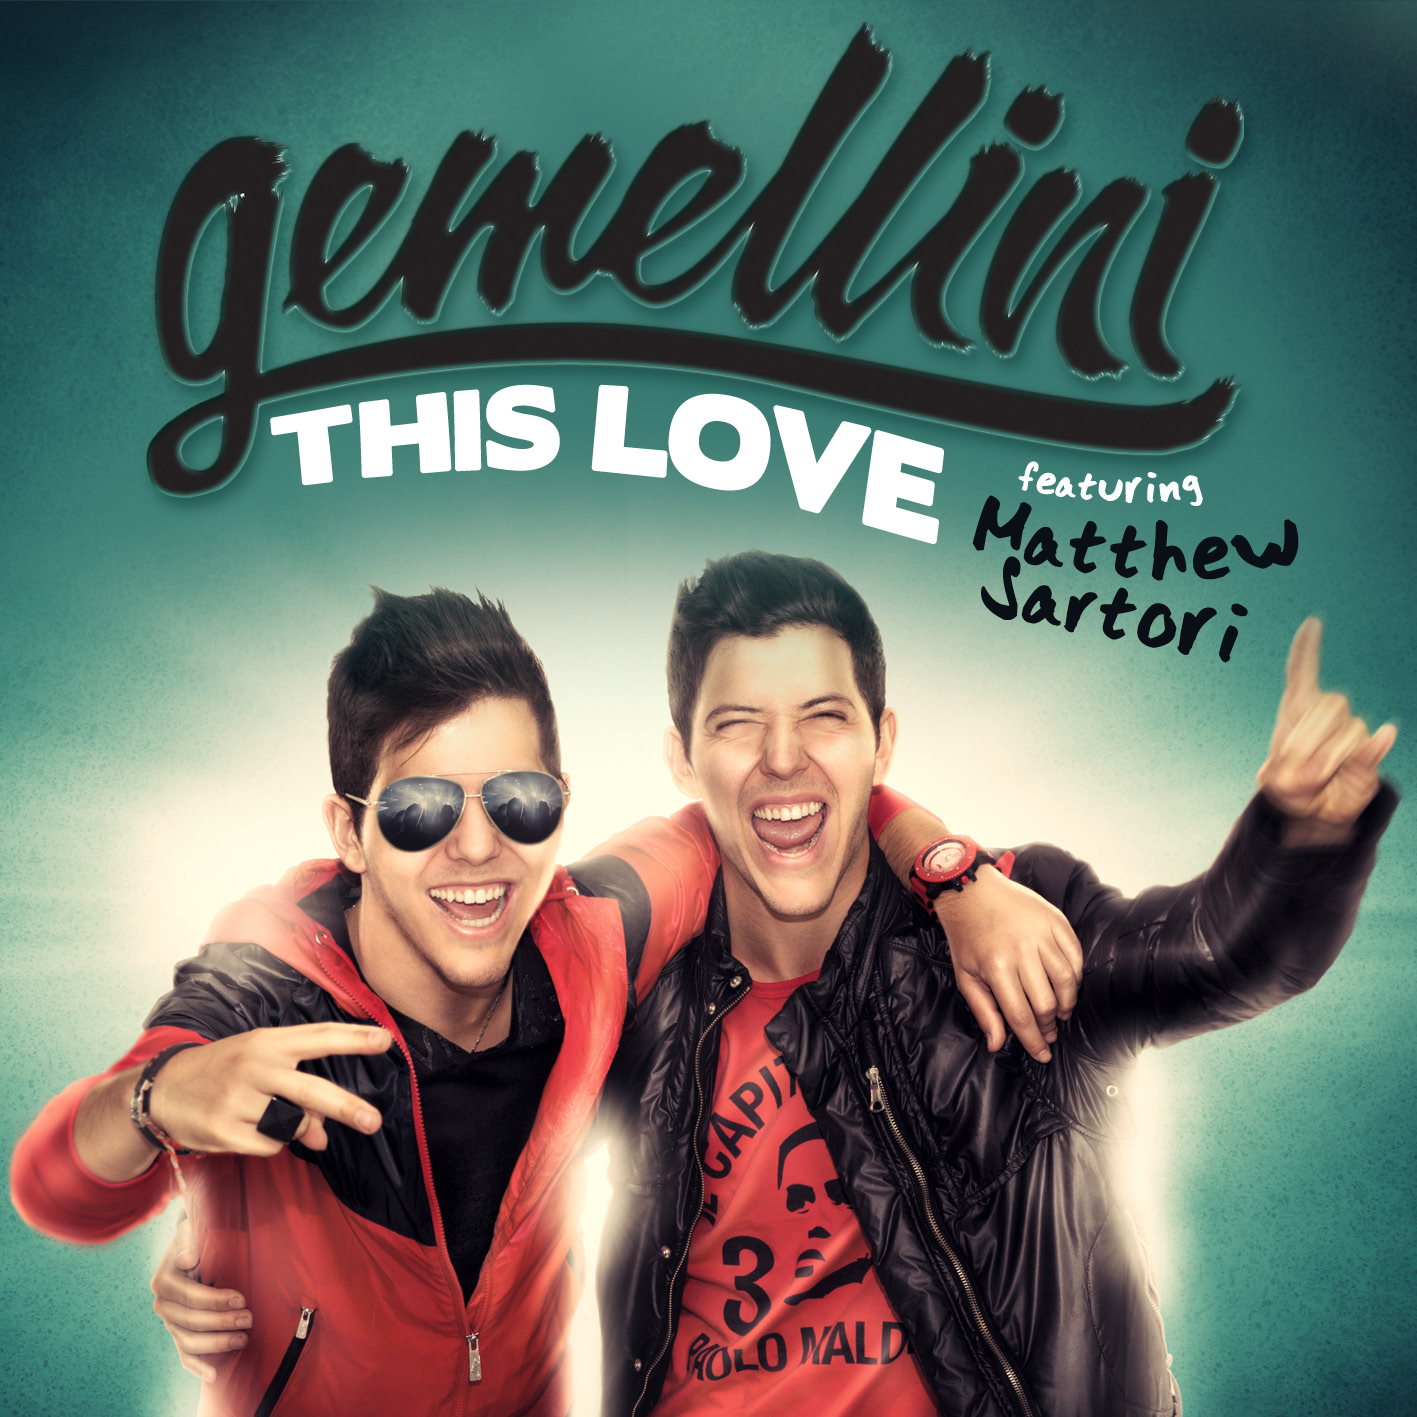 Gemellini feat. Matthew Sartori - This Love